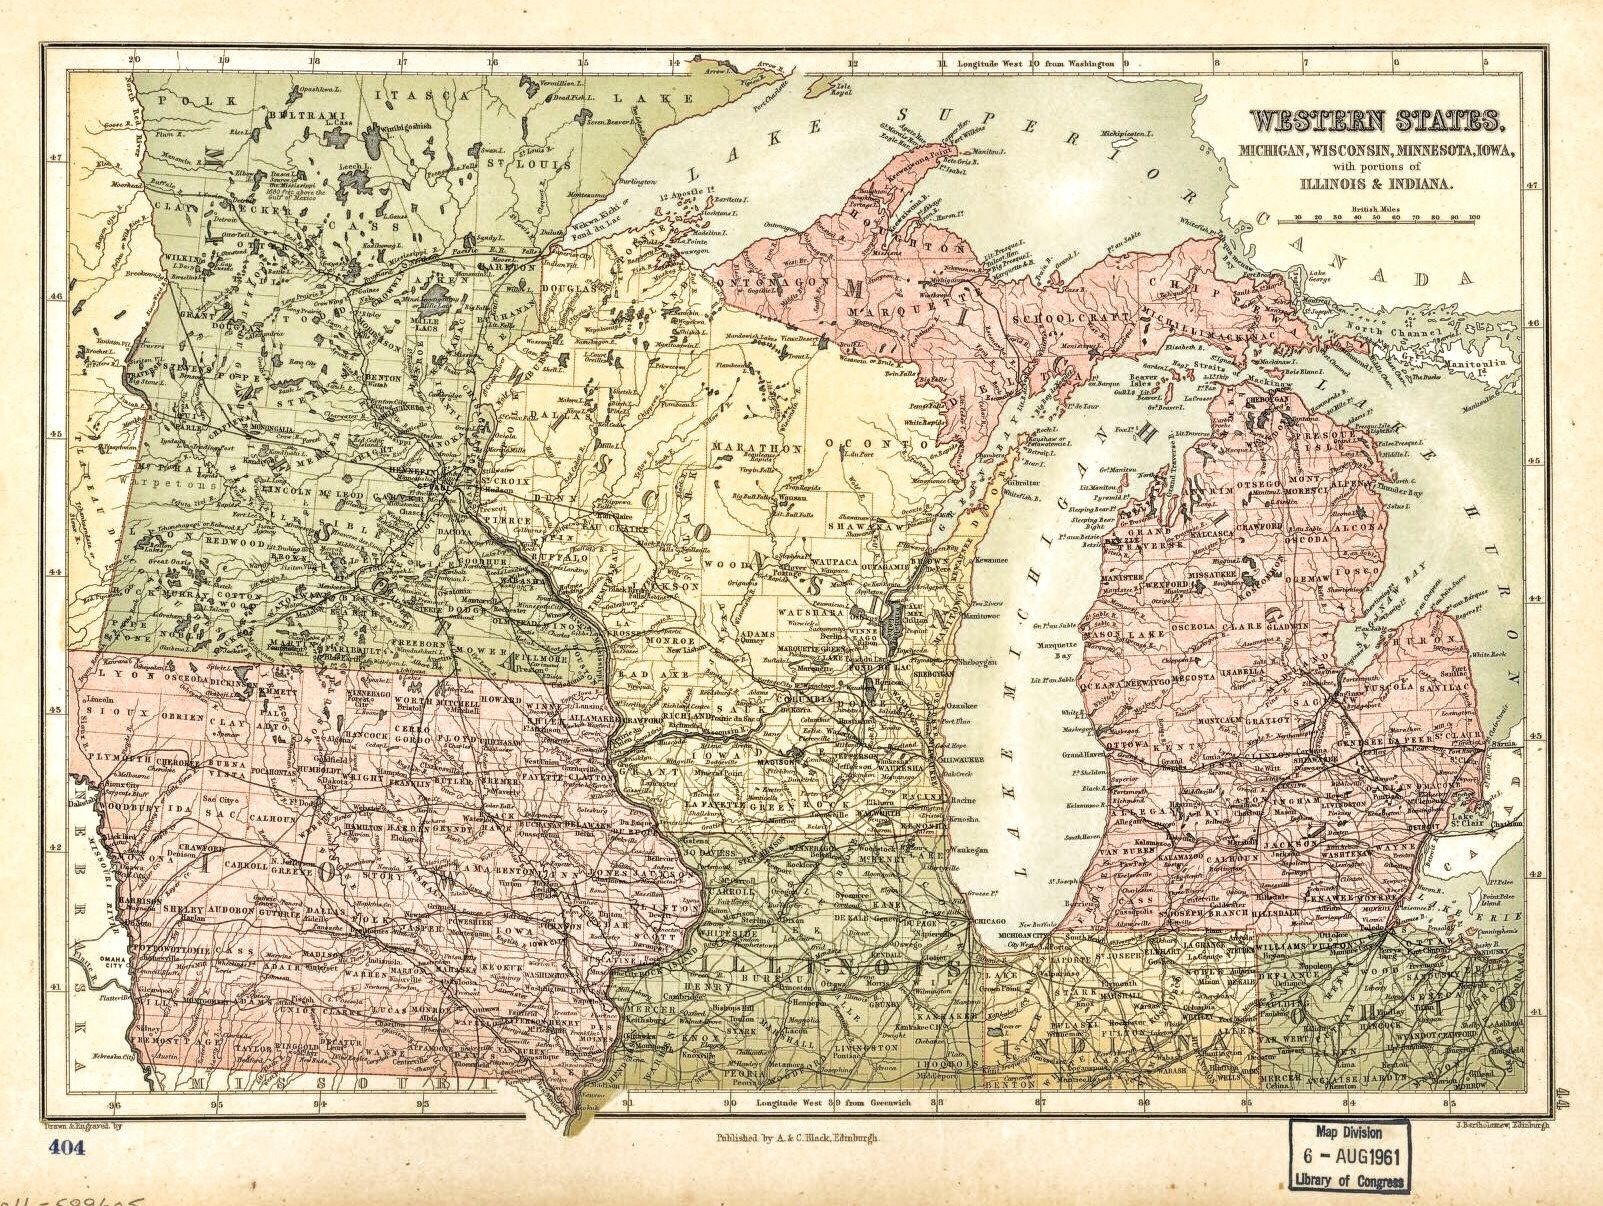 map of michigan wisconsin minnesota iowa with portions of